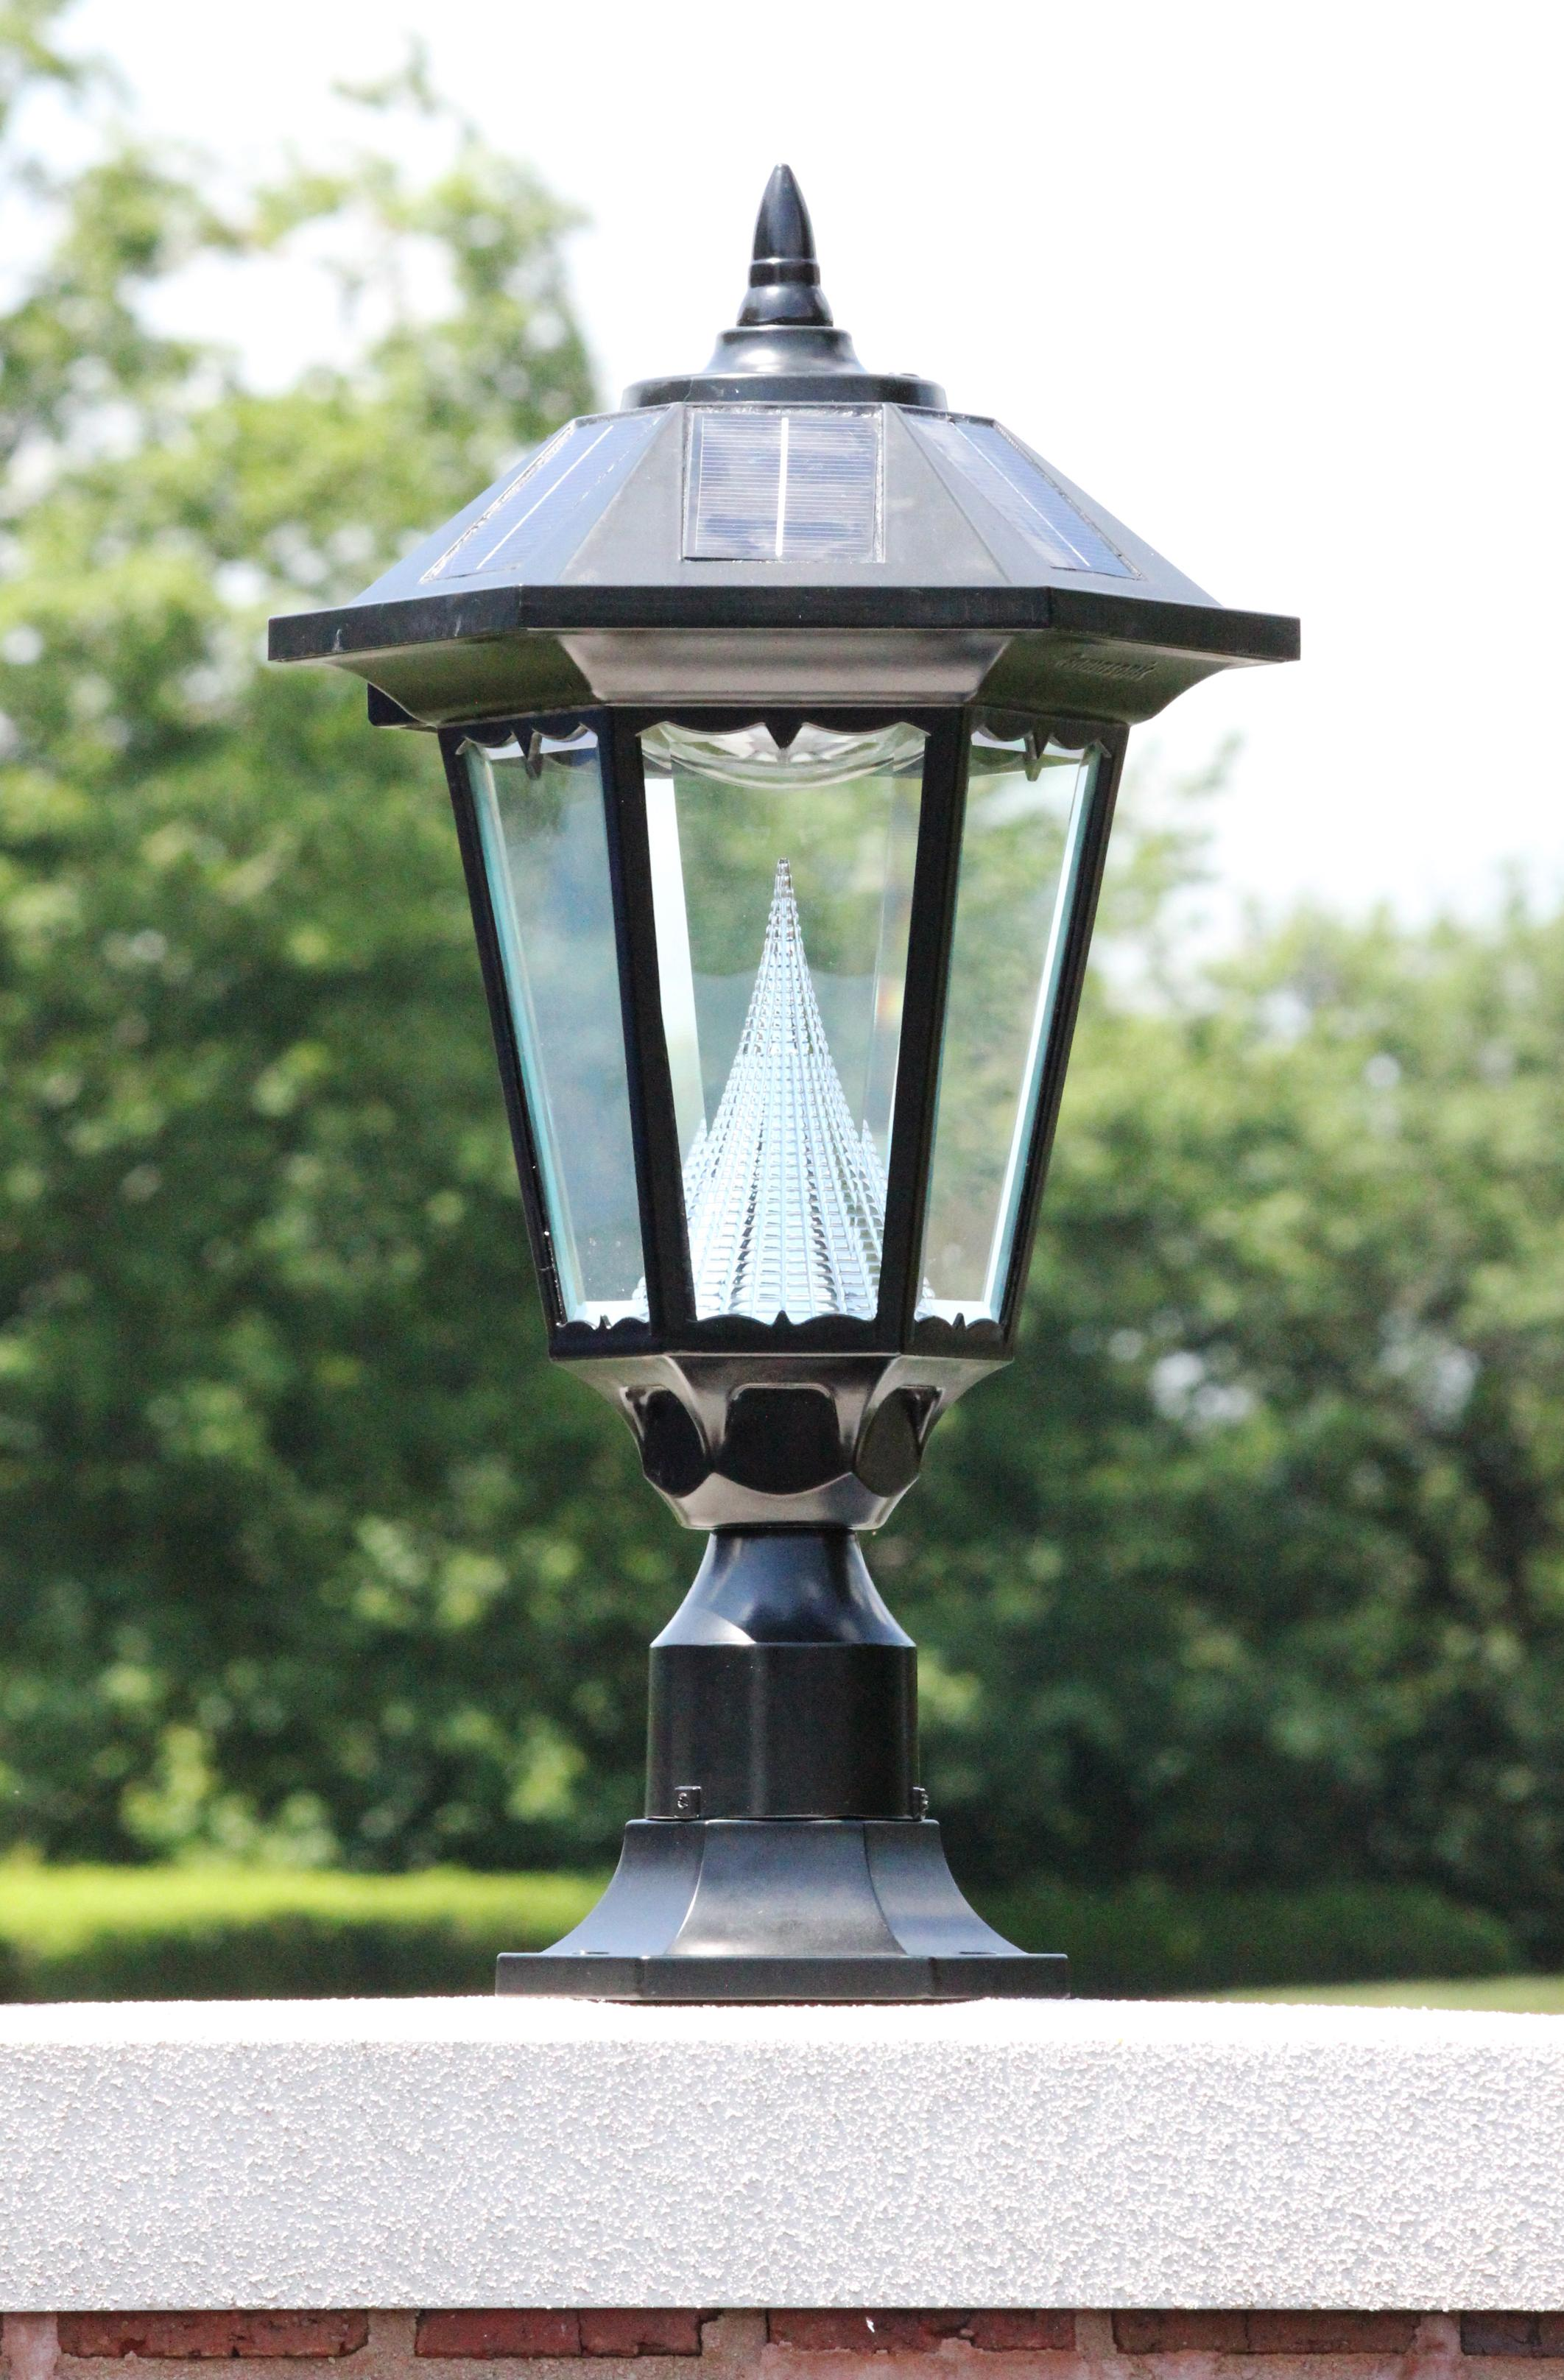 Gama sonic windsor solar outdoor post light black finish gs 99f landscape path for Solar exterior post lantern light